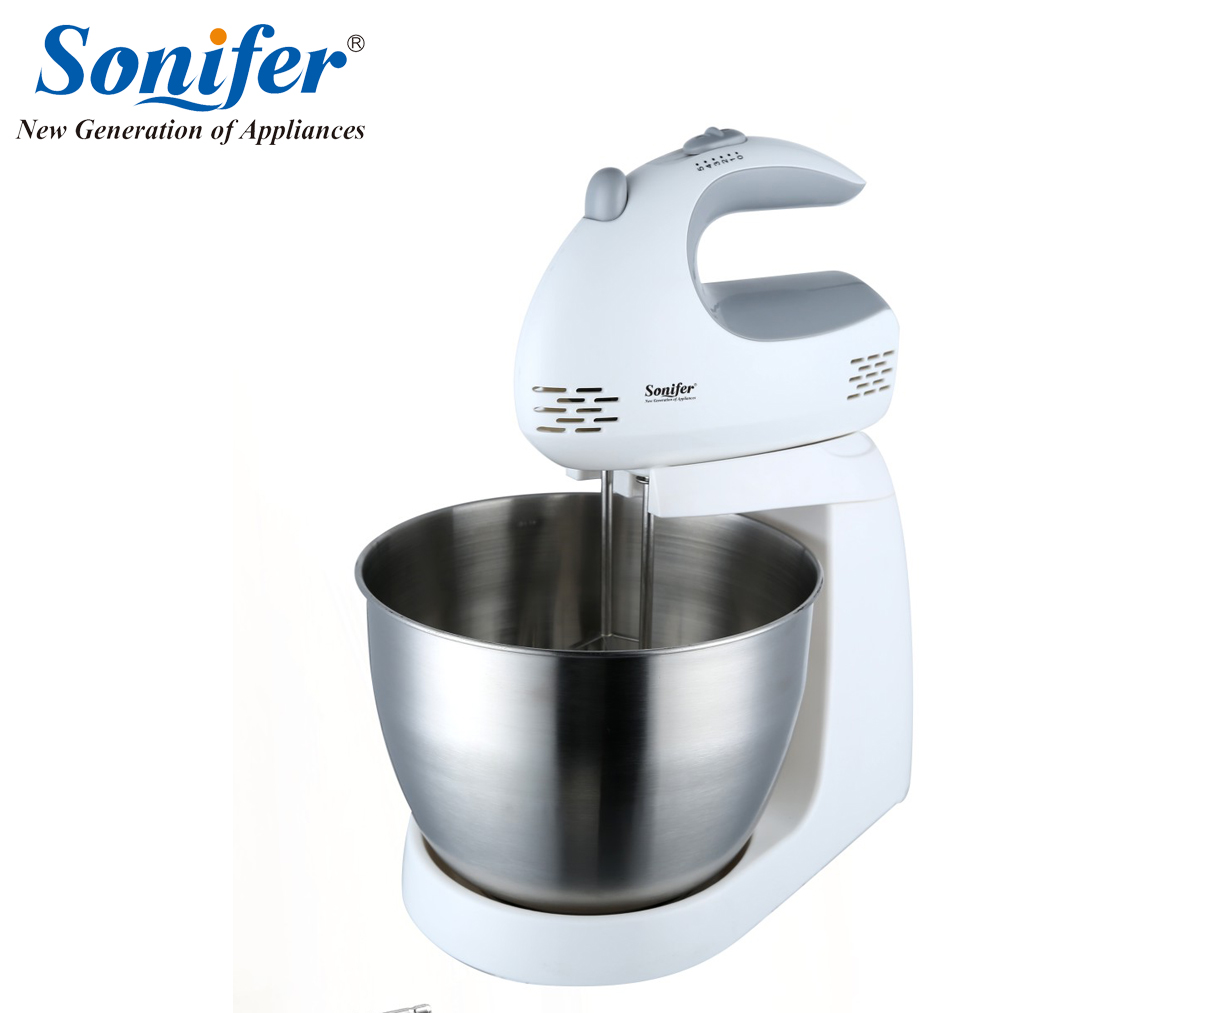 Multifunction Table Electric Food Mixers Dough Mixer Egg Beater 220v Food Blender for Kitchen Sonifer jiqi multifunction table electric food mixer table handheld egg beater blender for baking with 7 speed automatic whisk eu usplug